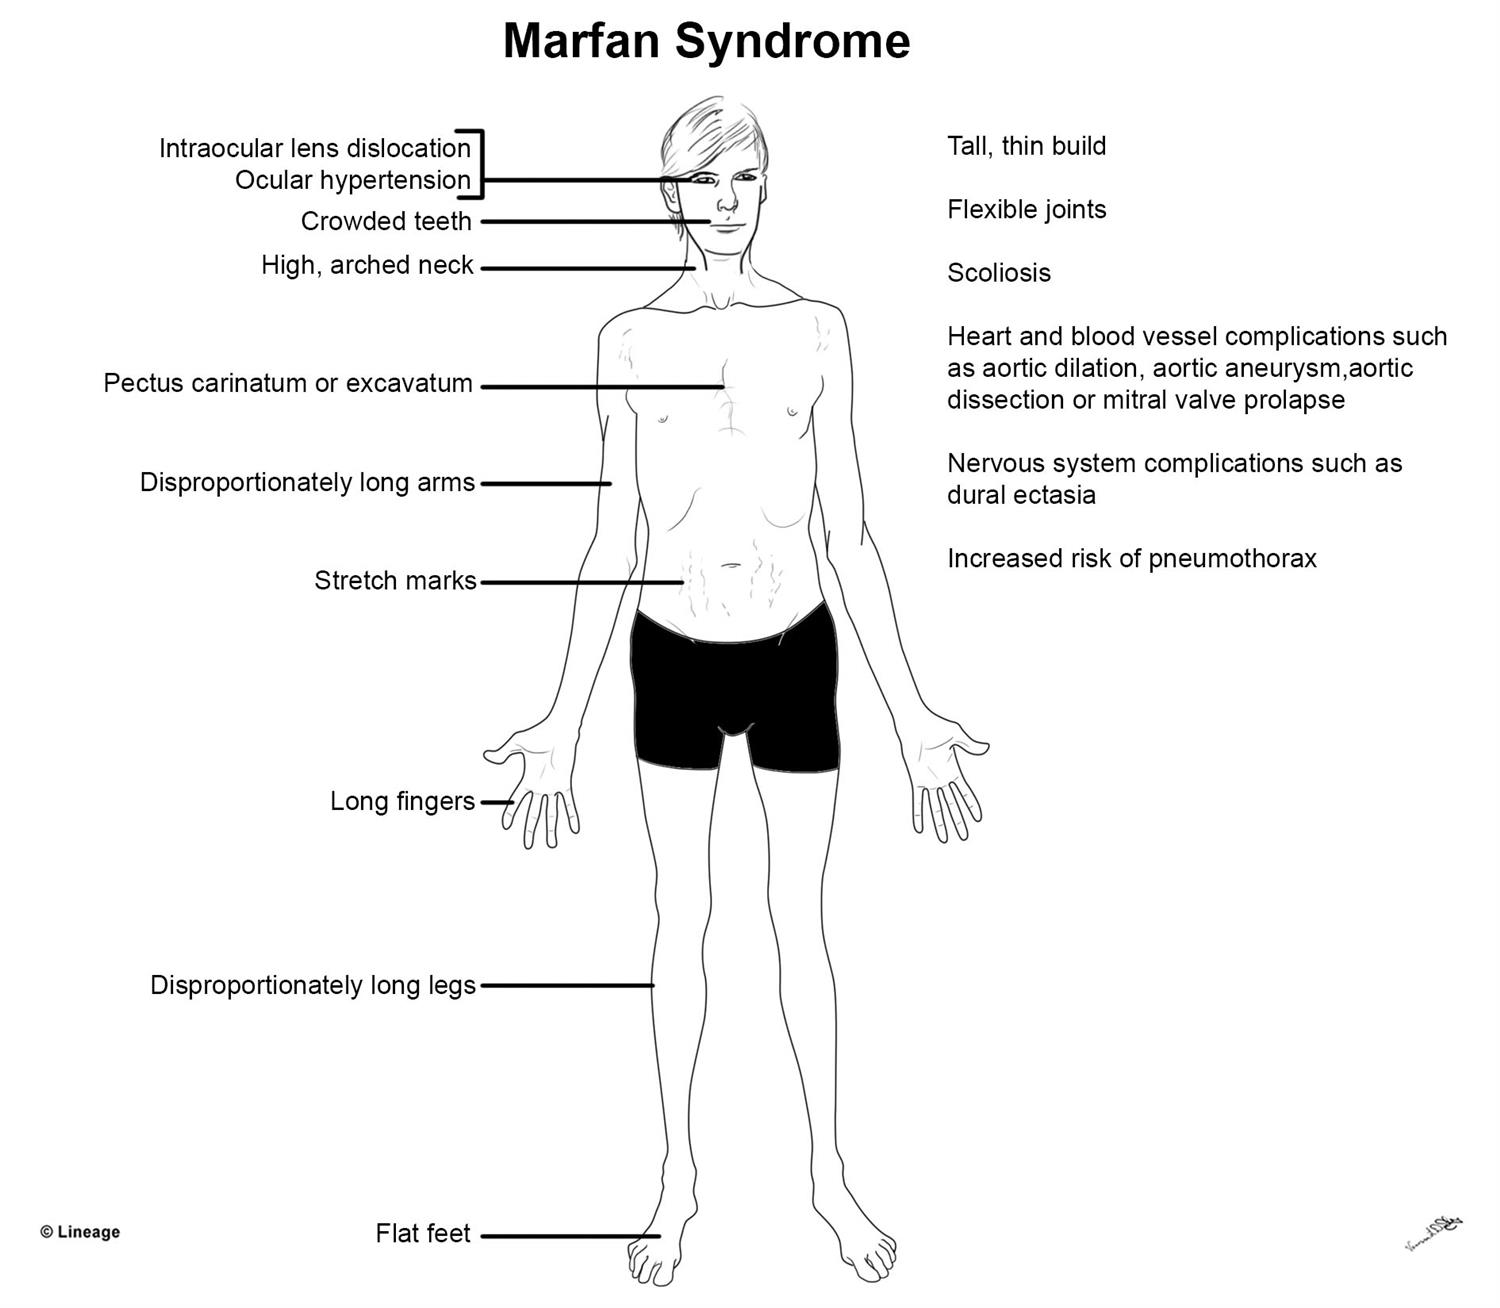 https://upload.medbullets.com/topic/113055/images/marfan_syndrome.jpg